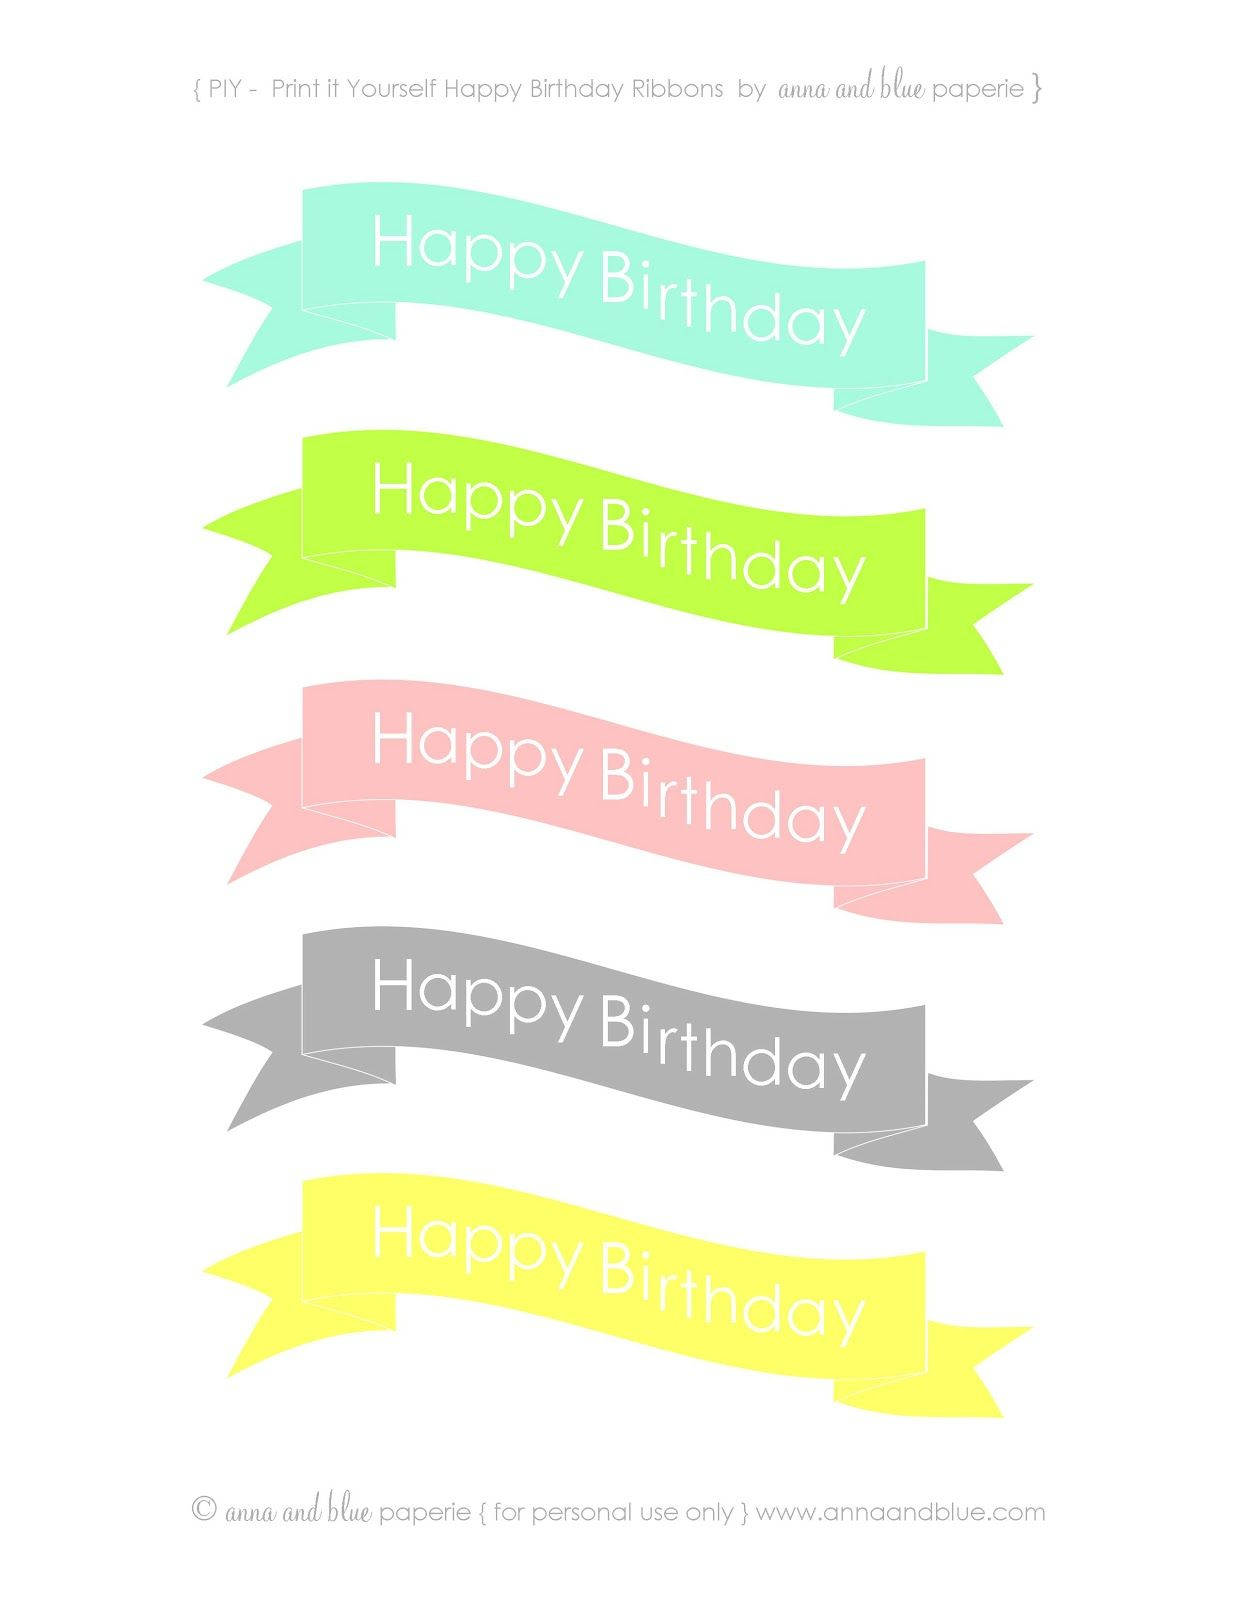 Anna And Blue Paperie: {Free Printable} Happy Birthday Cake Banners - Free Printable Birthday Cake